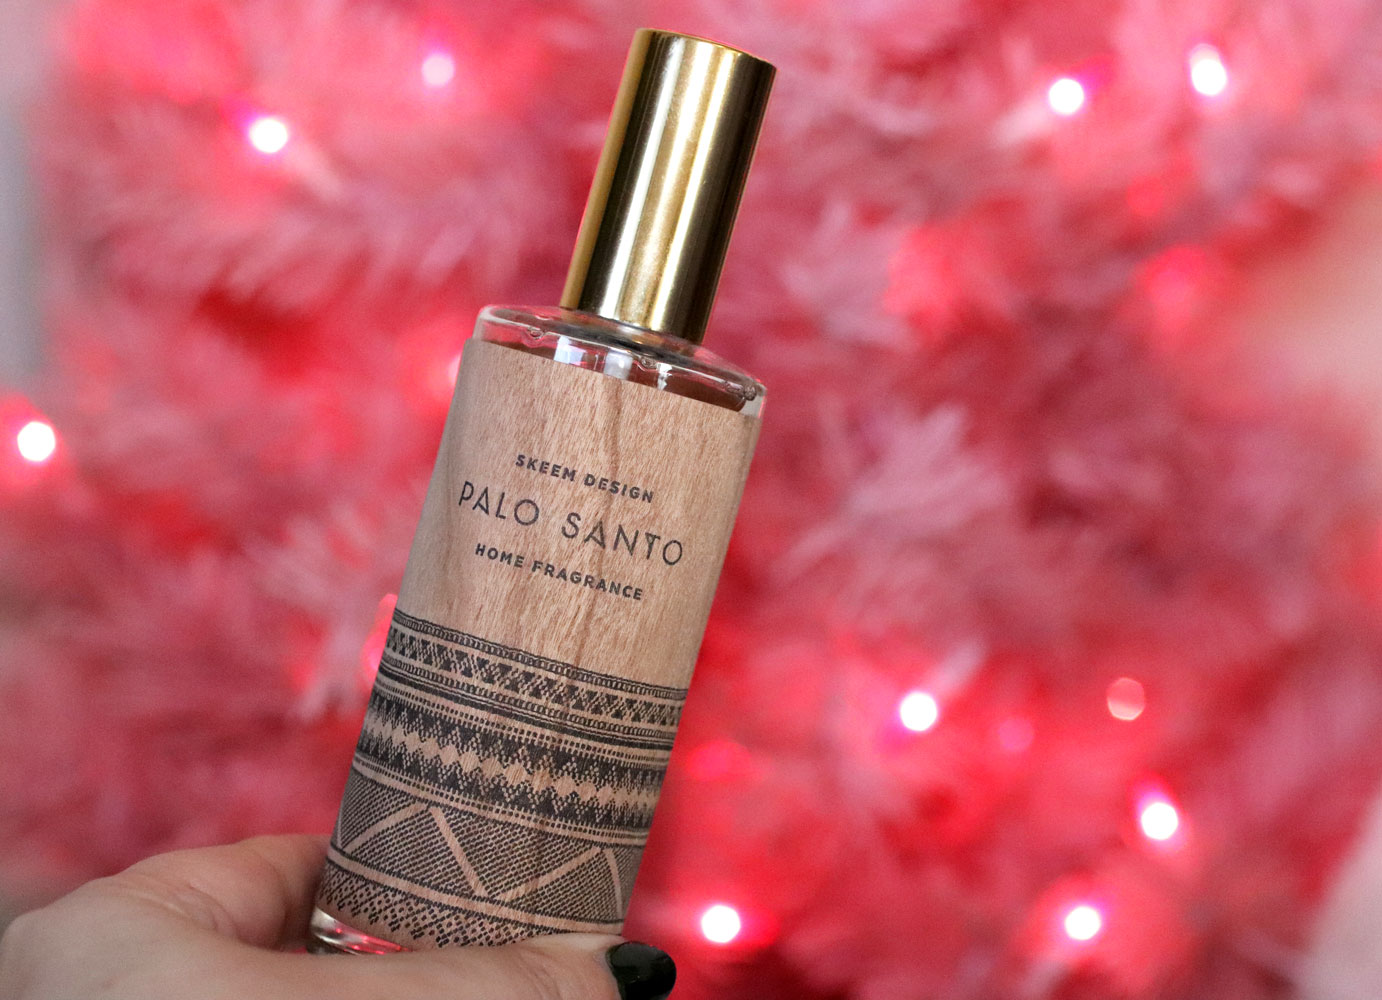 Woman Owned Holiday Gift Guide 2019 - Skeem Design Palo Santo Room Spray